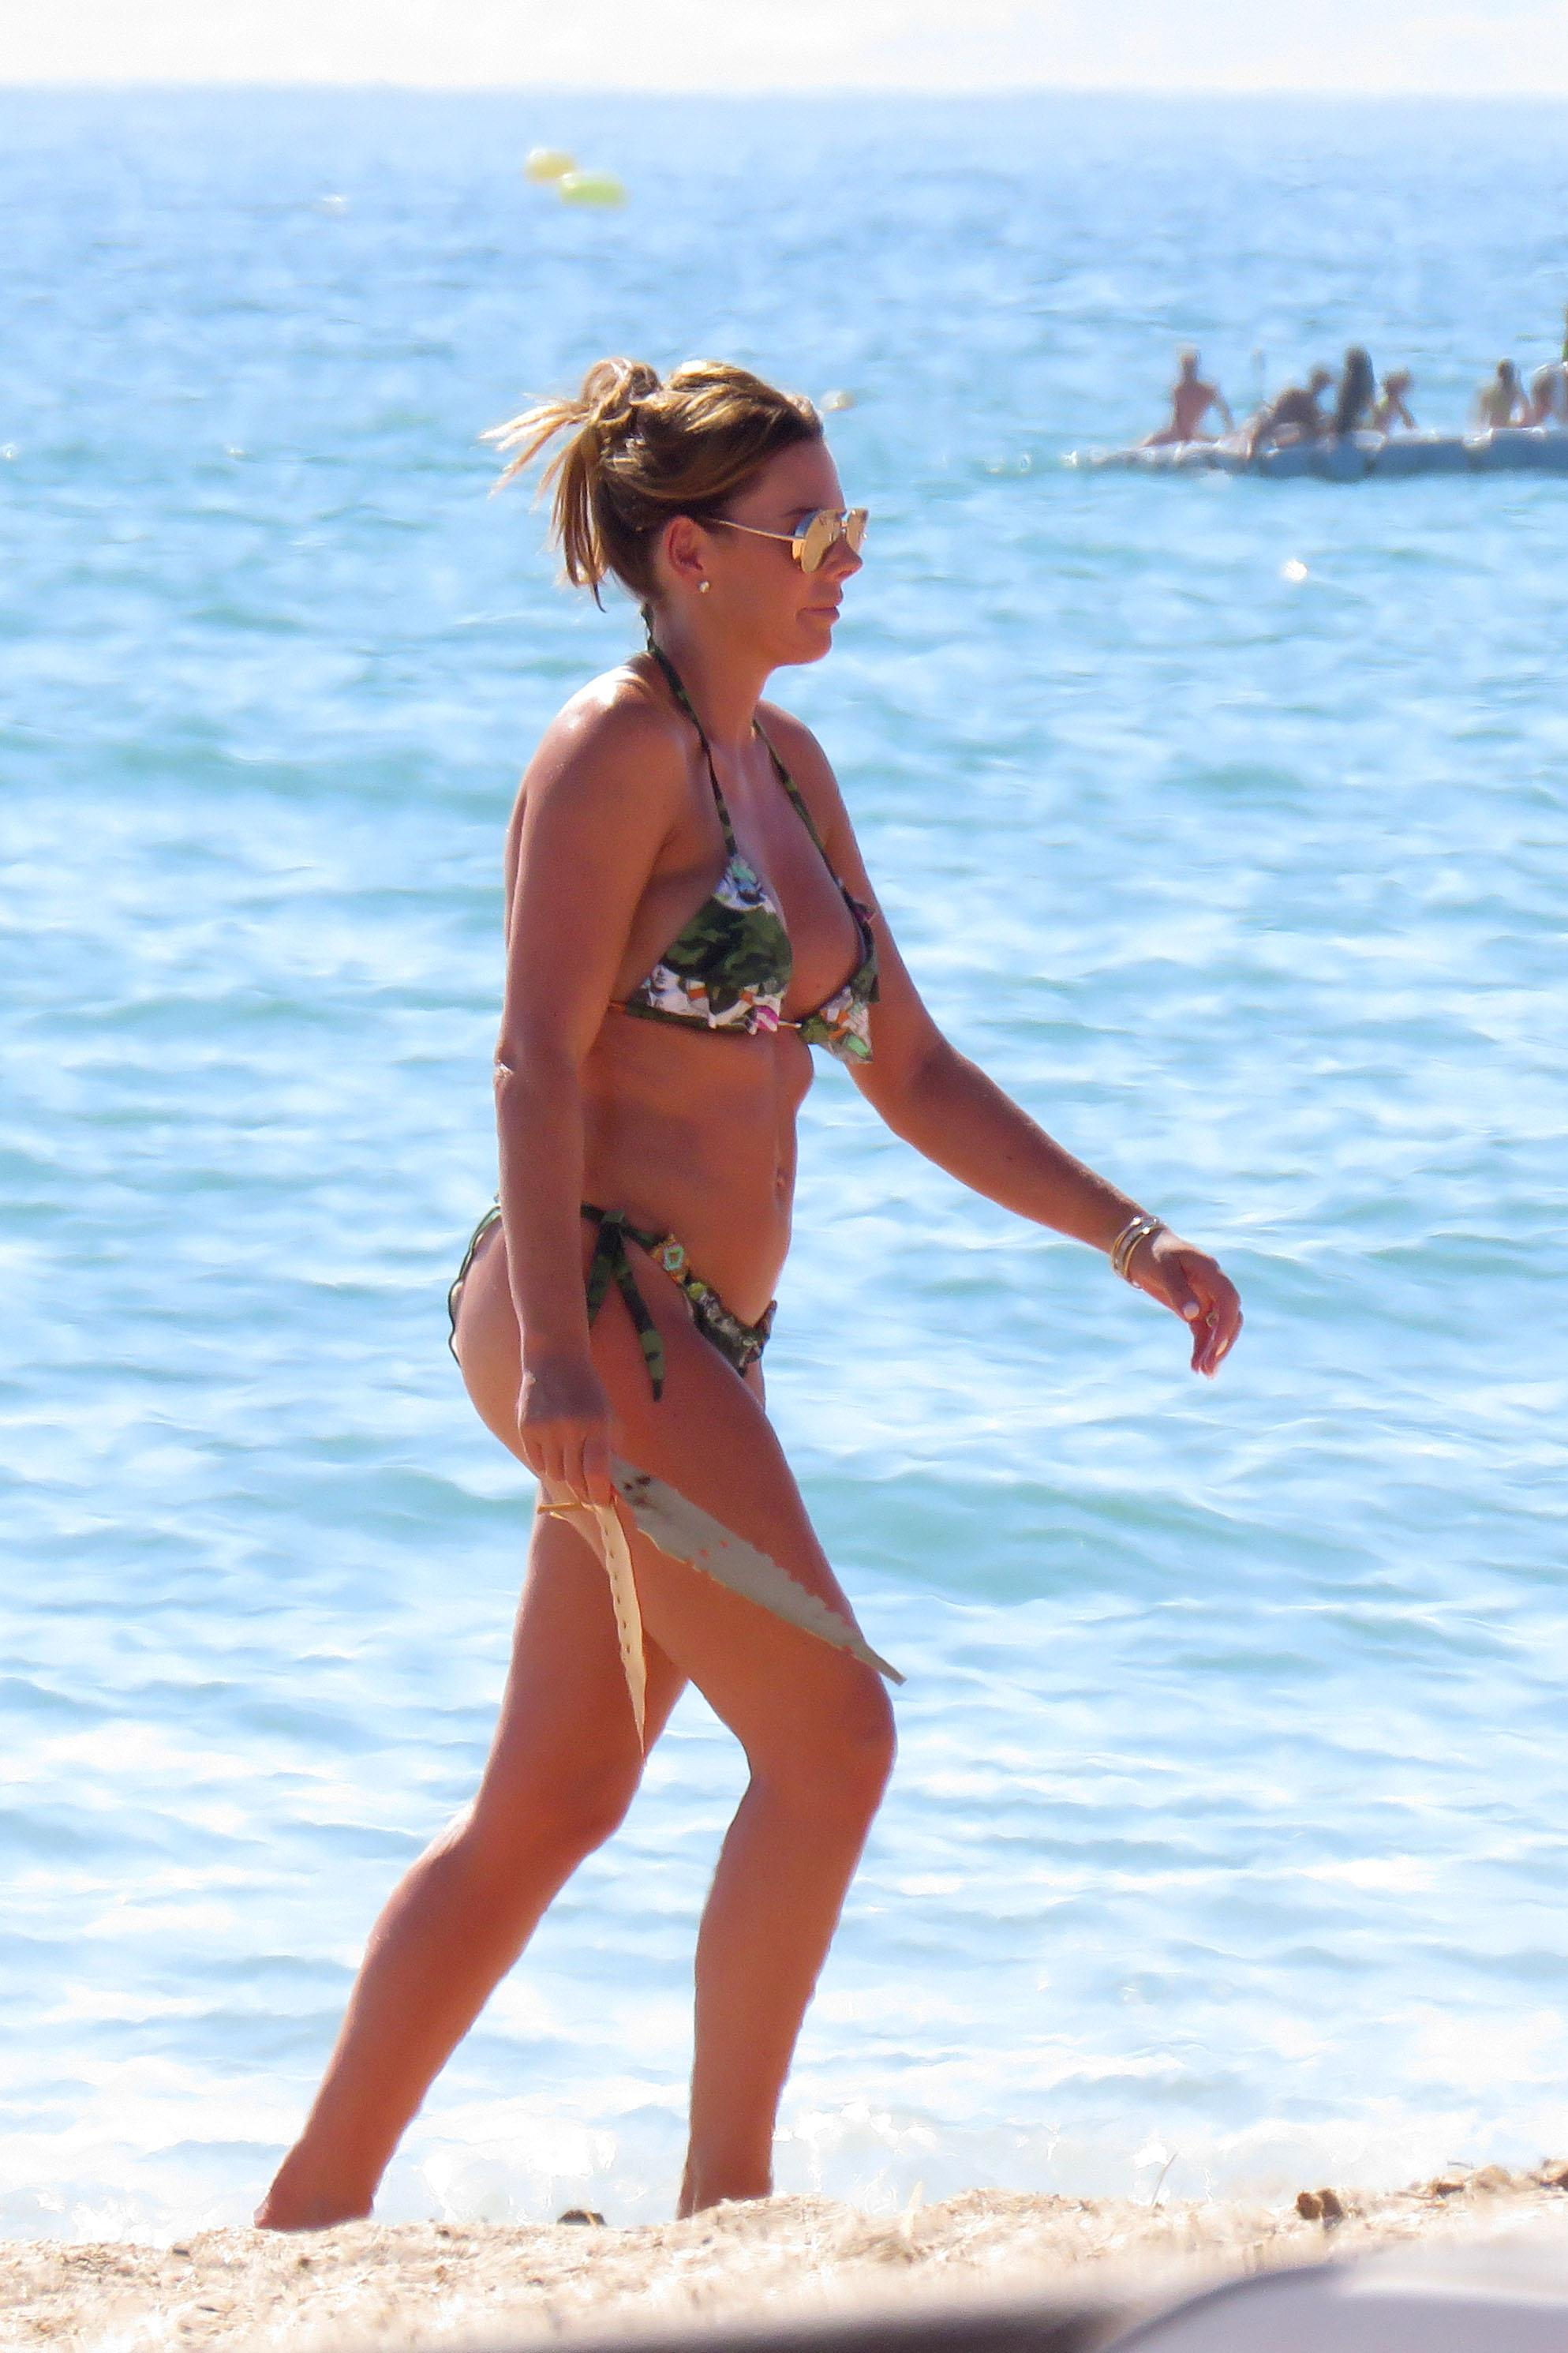 Toni looked stunning as she took a stroll on the beach